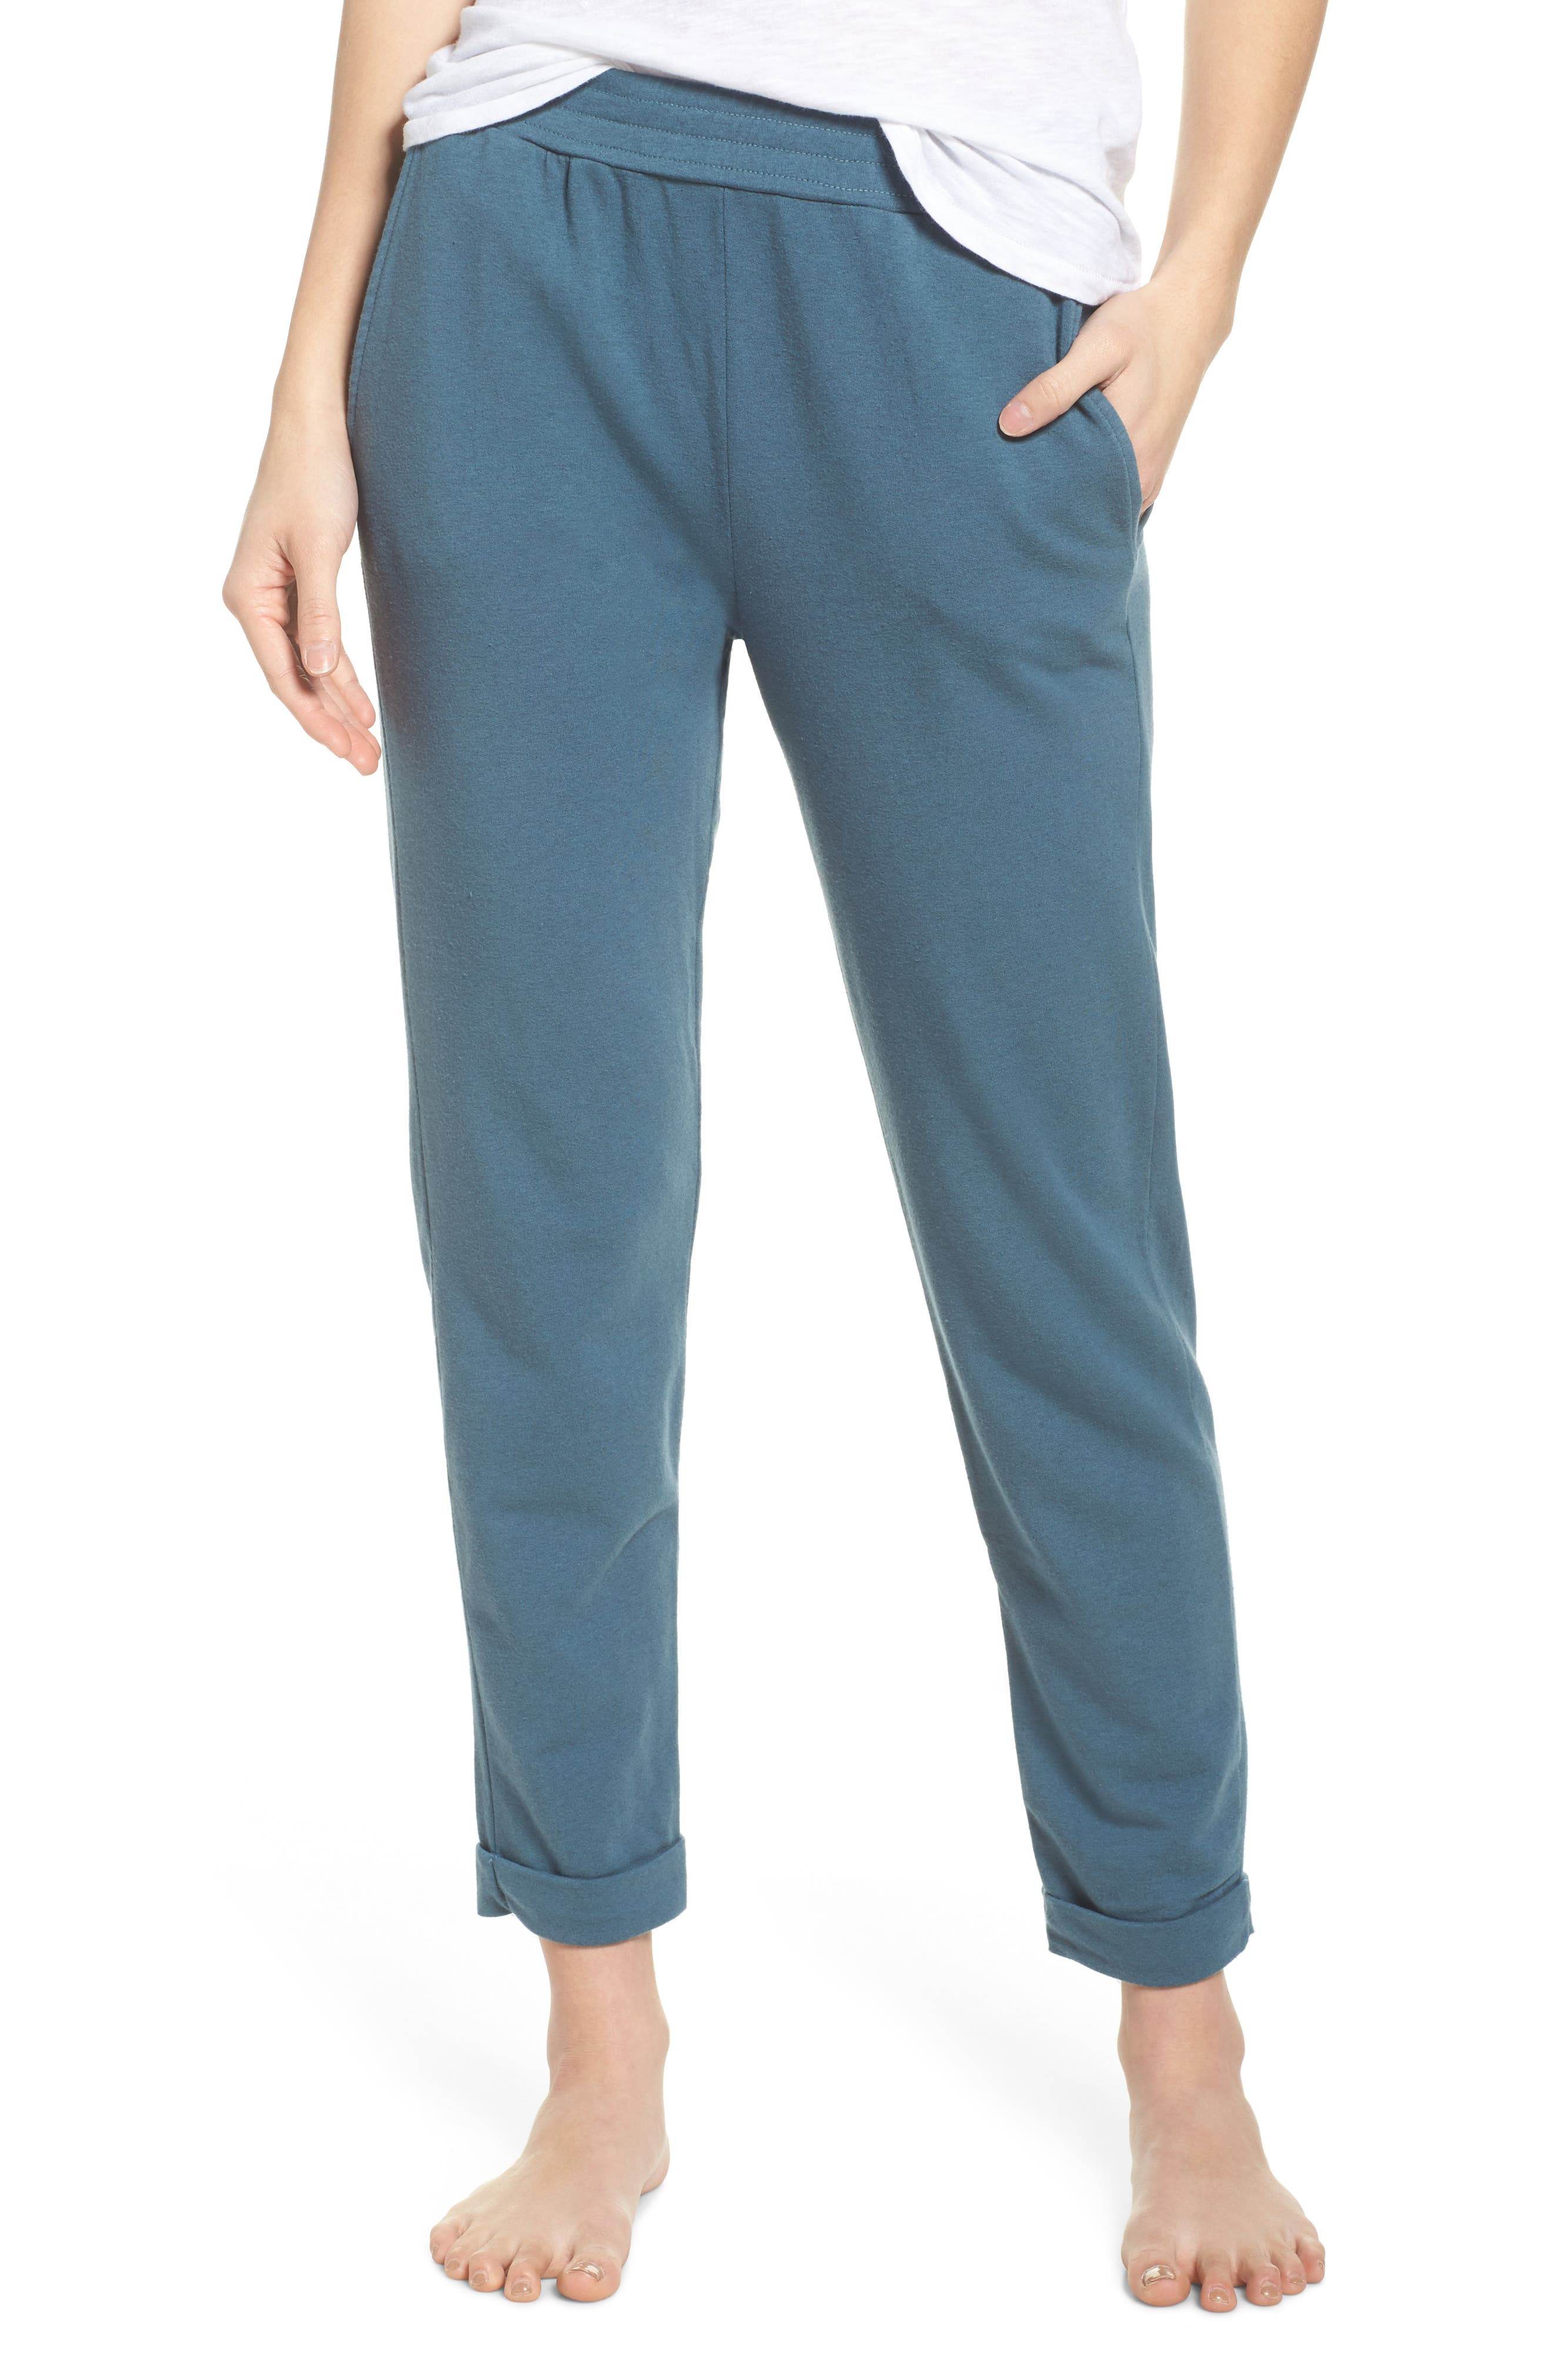 French Terry Sweatpants,                         Main,                         color, Royal Teal